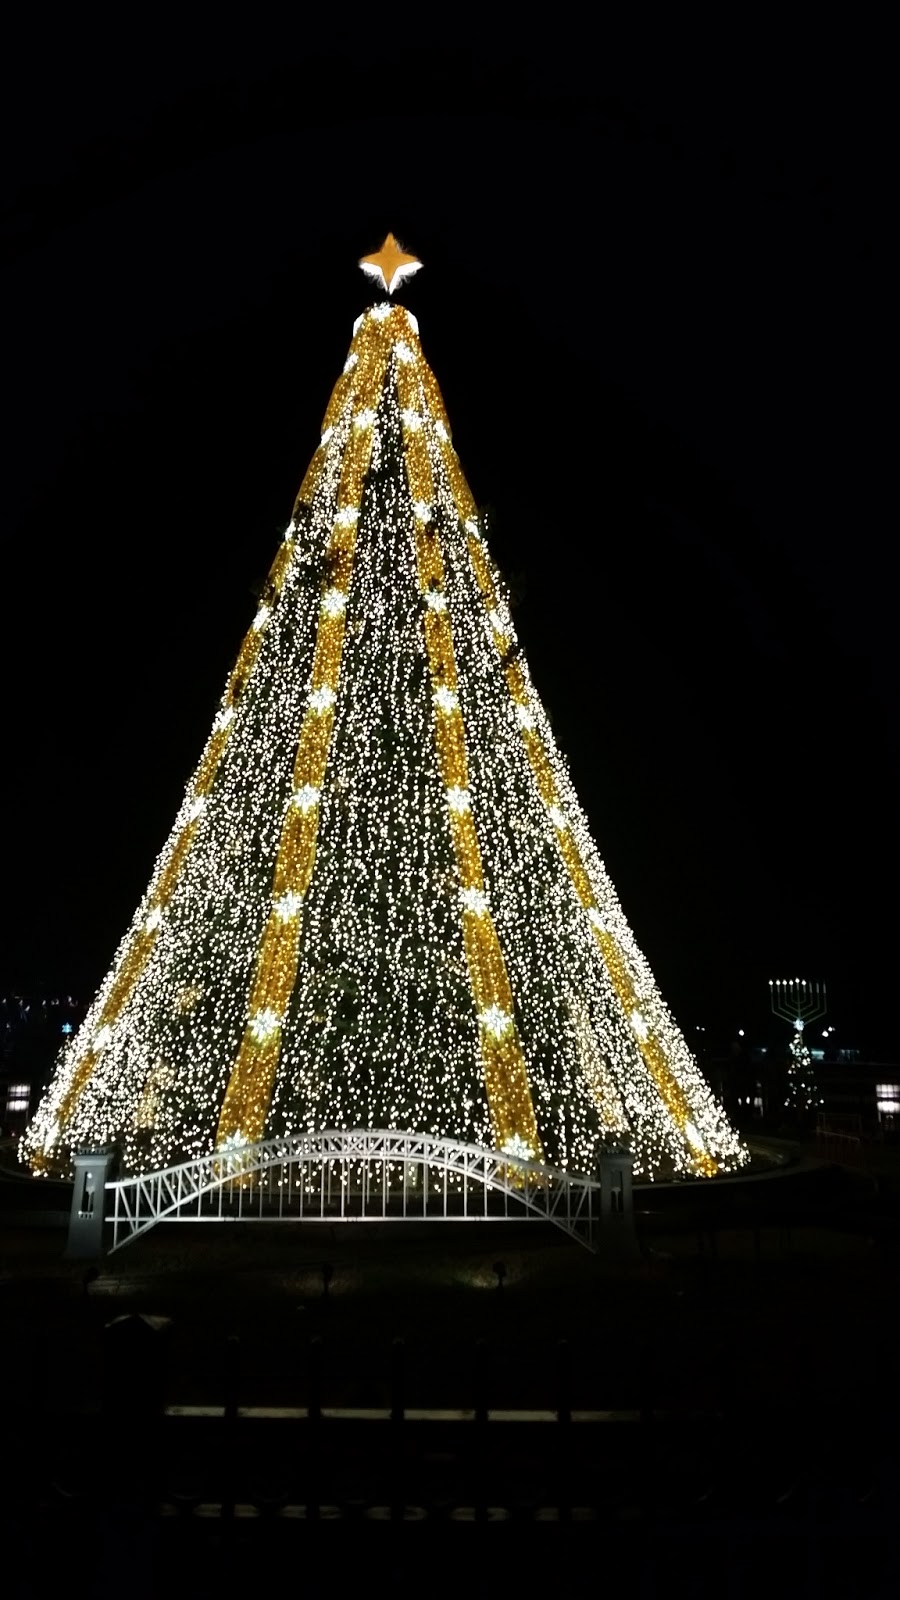 Will Write 4 Travel December 2015 - Visiting The National Christmas Tree